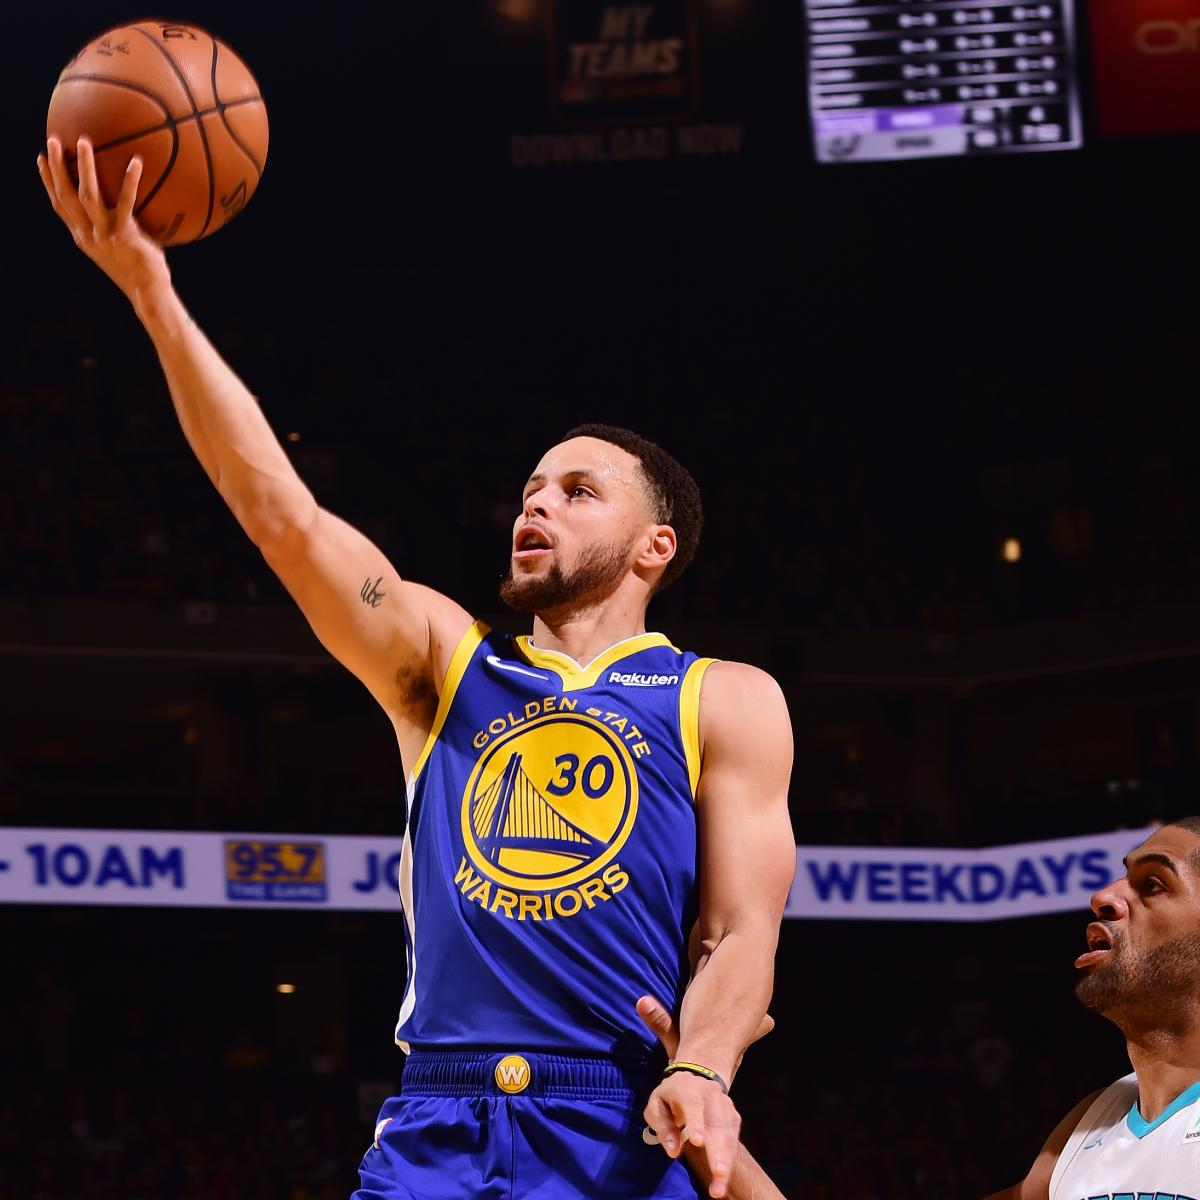 Stephen Curry scored 25 points and Klay Thompson added 24 more as the Golden State Warriors crushed the Charlotte Hornets 137-90 on Sunday at Oracle Arena in Oakland, California...